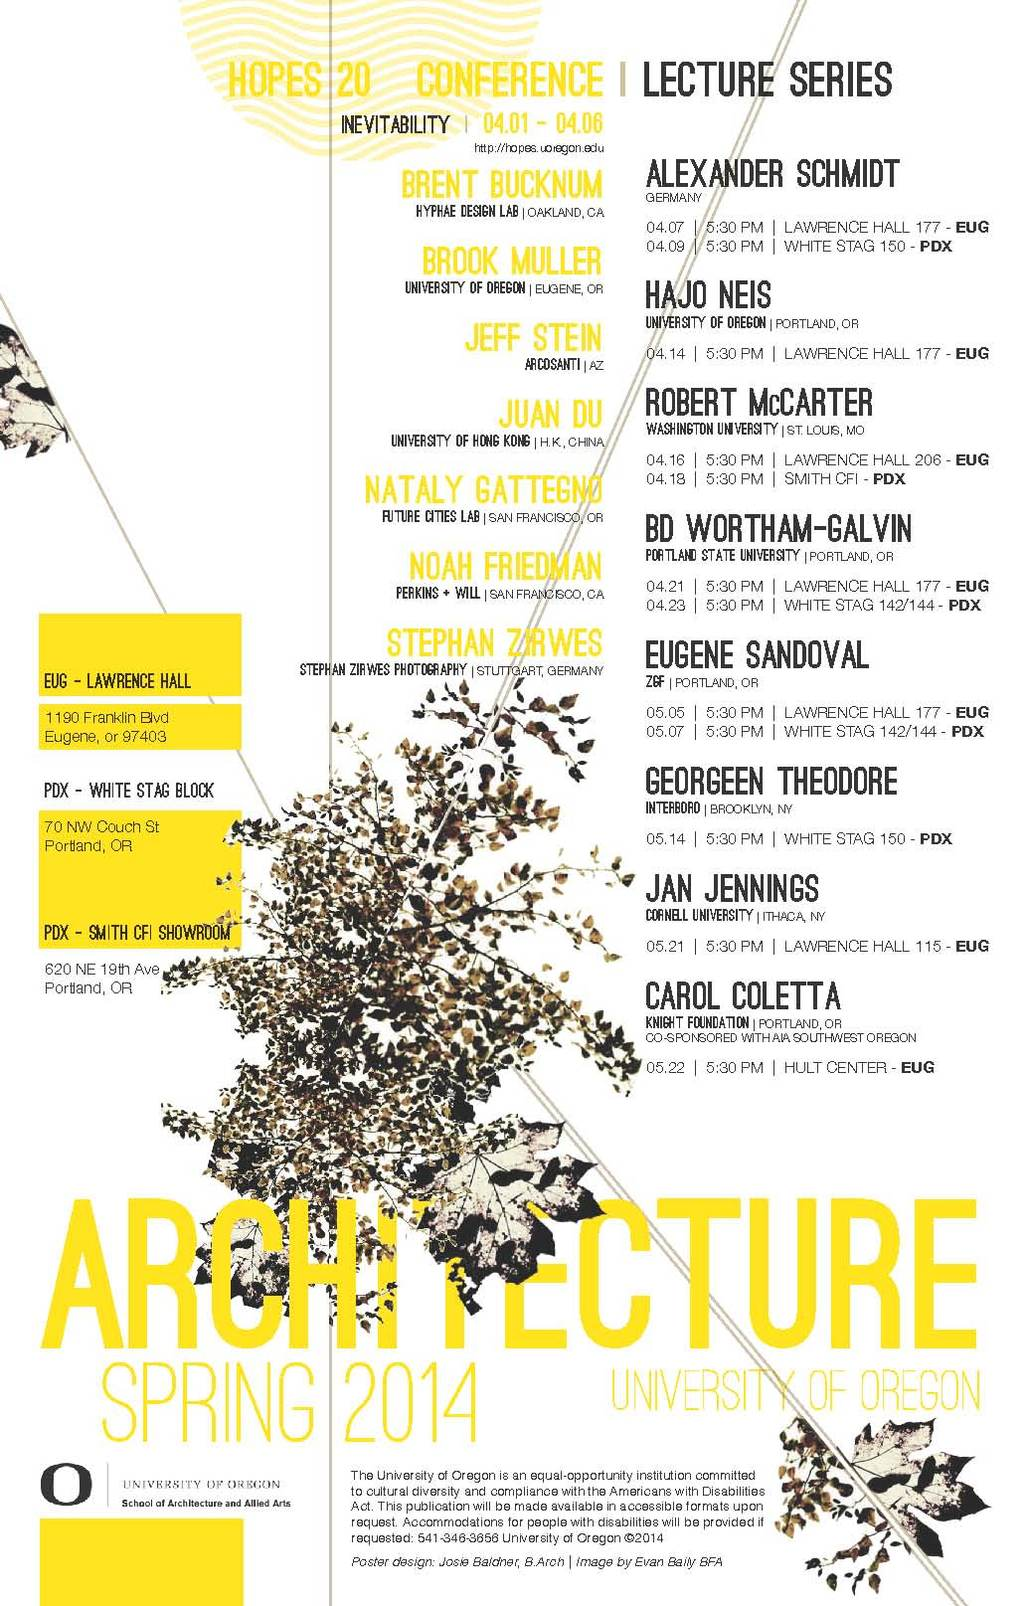 U. Oregon Spring '14 Lectures and Events. Poster design: Josie Baldner, B.Arch. Image: Evan Baily BFA